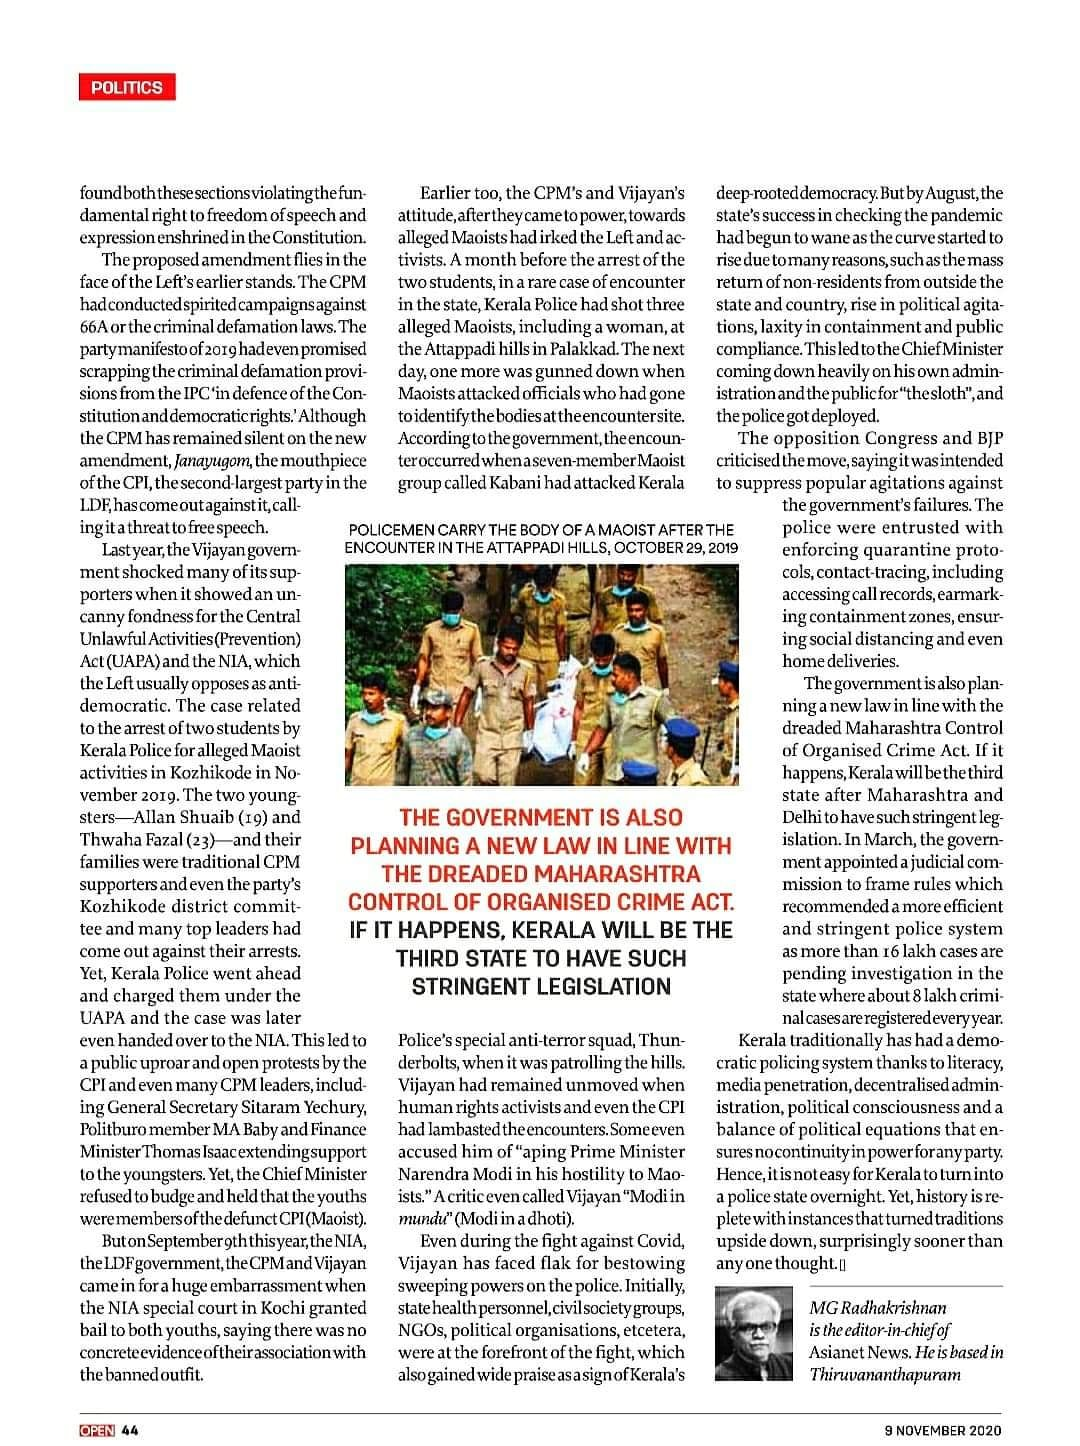 Article 'Has Kerala Become a Police State?